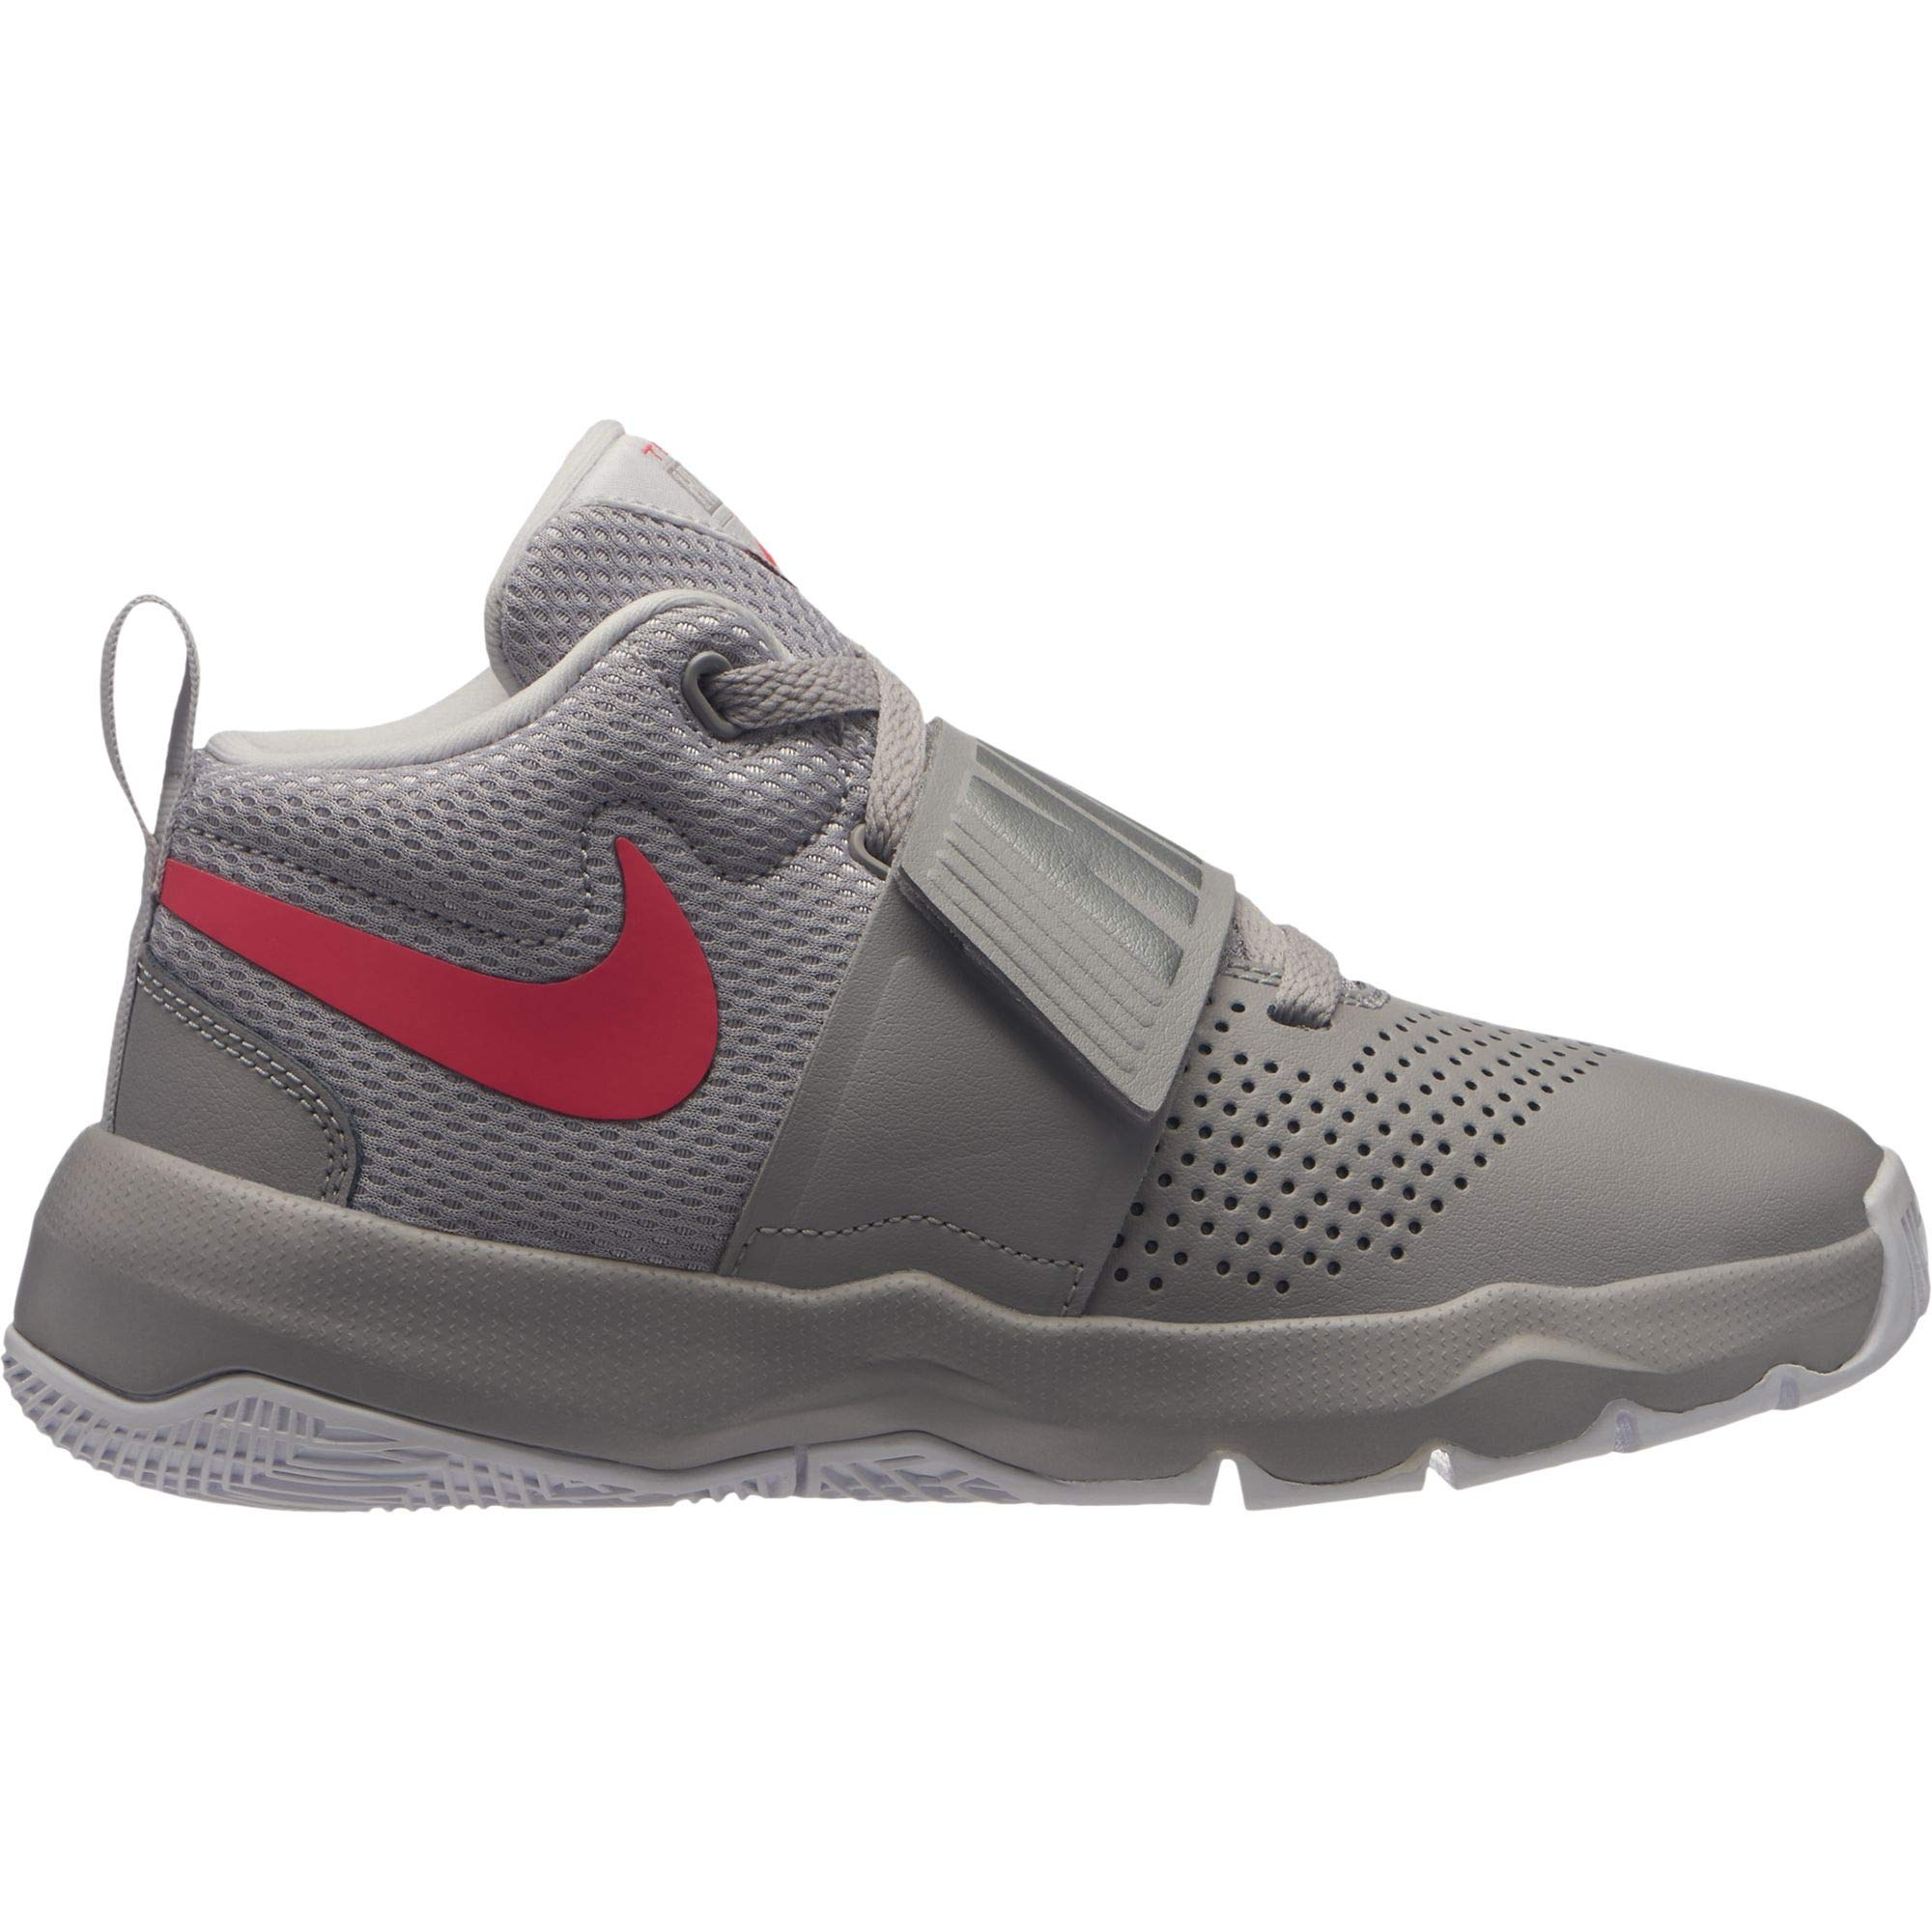 Nike Boys' Team Hustle D 8 (GS) Basketball Shoe, Atmosphere Racer Pink-VAST Grey, 5Y Youth US Big Kid